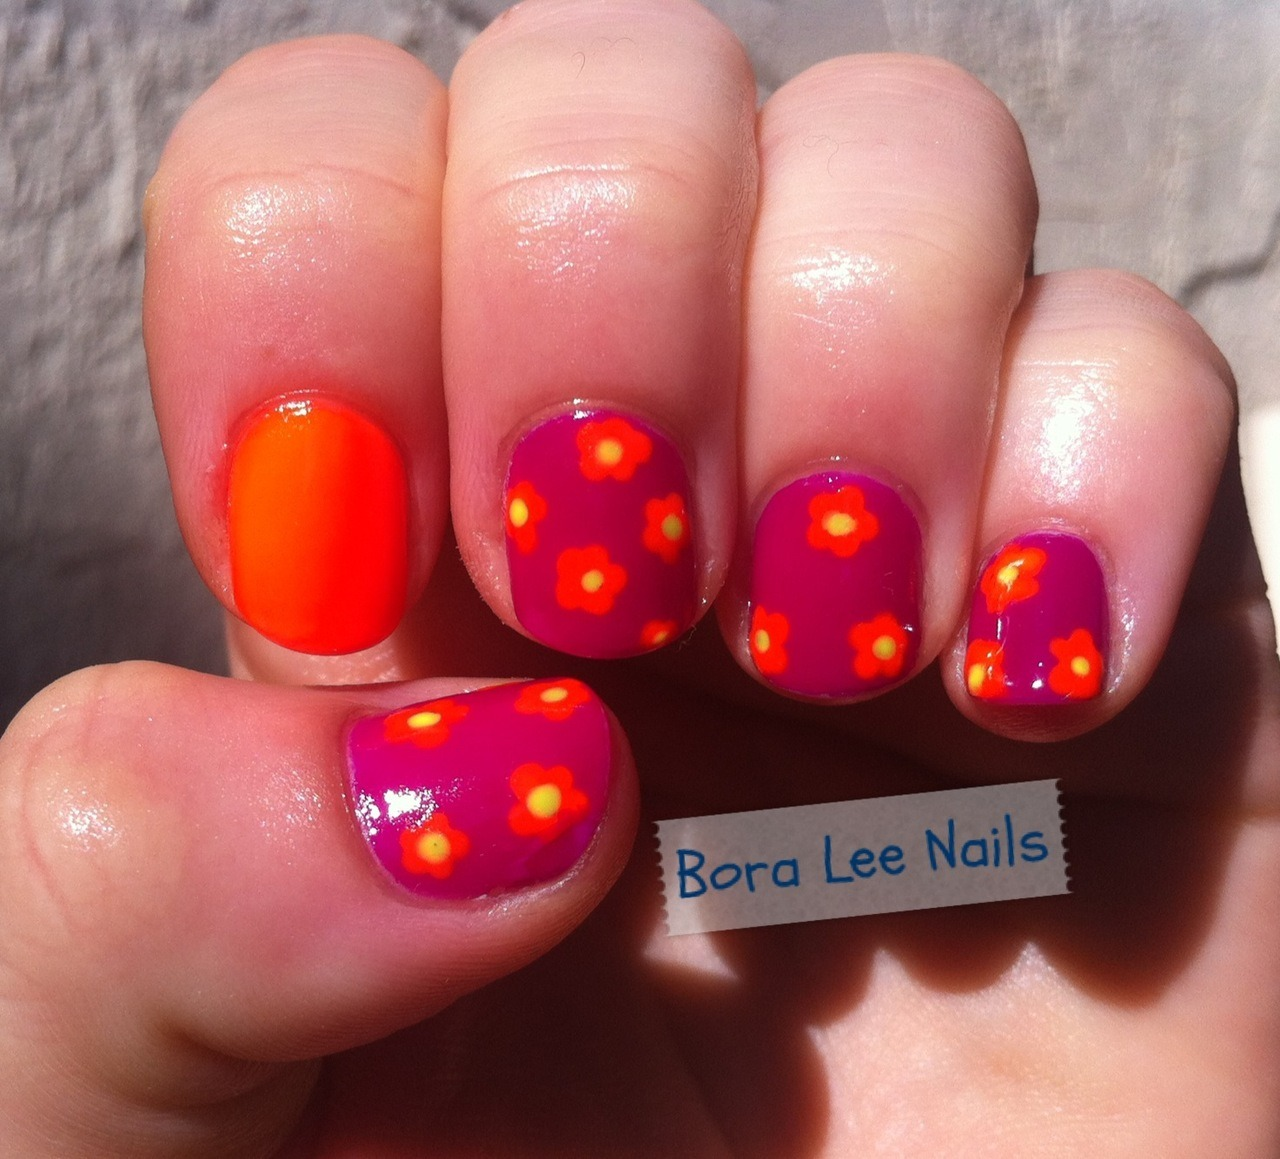 Funky Floral Nails: I love this neon orange! Products used: Nina Ultra Nail Pro: Punki Purple, Solar Flare, Orange Flame